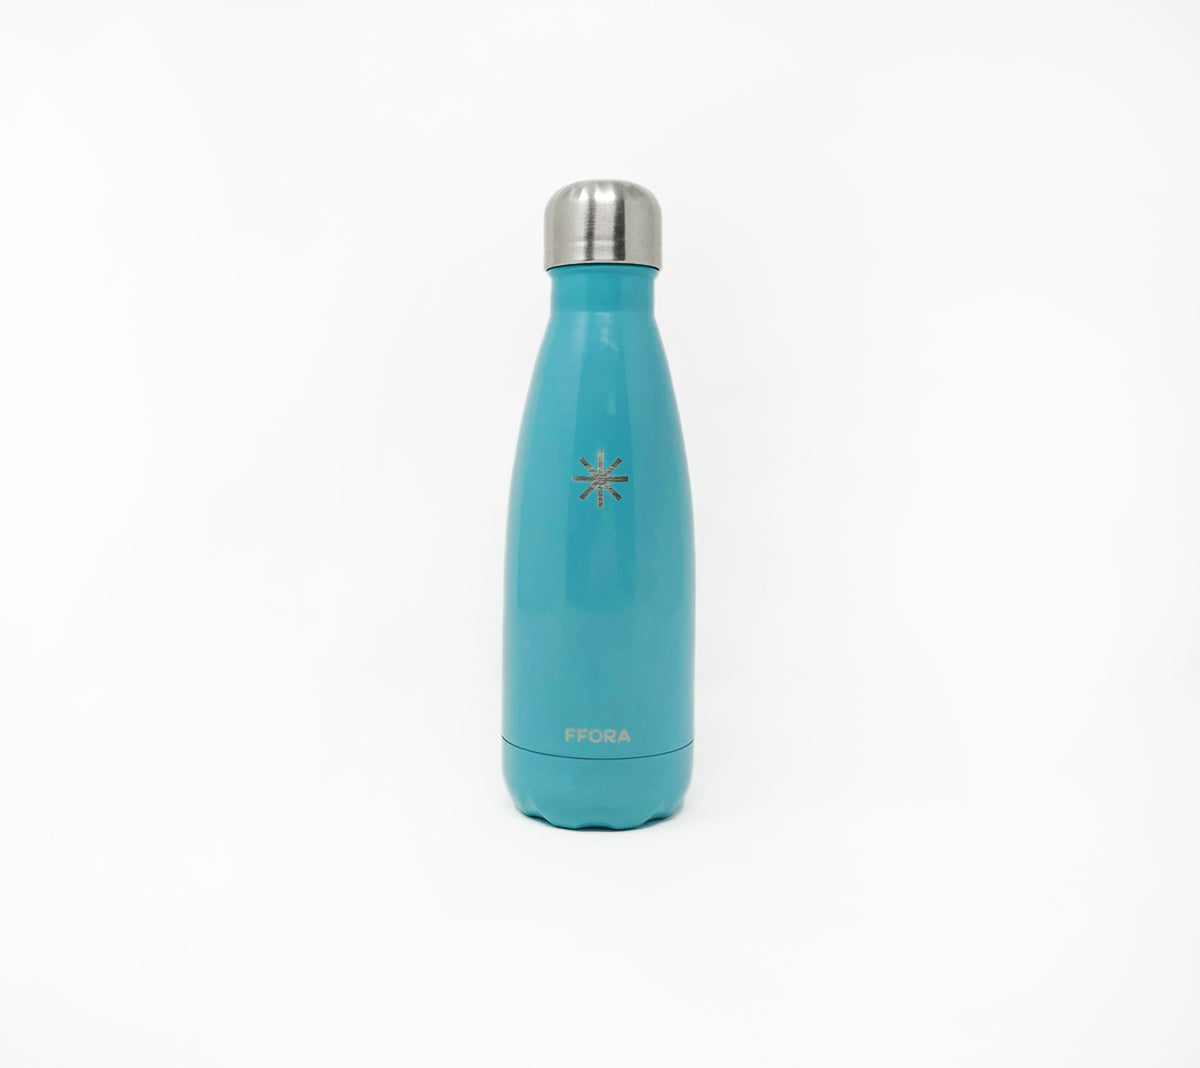 FFORA Insulated Bottle